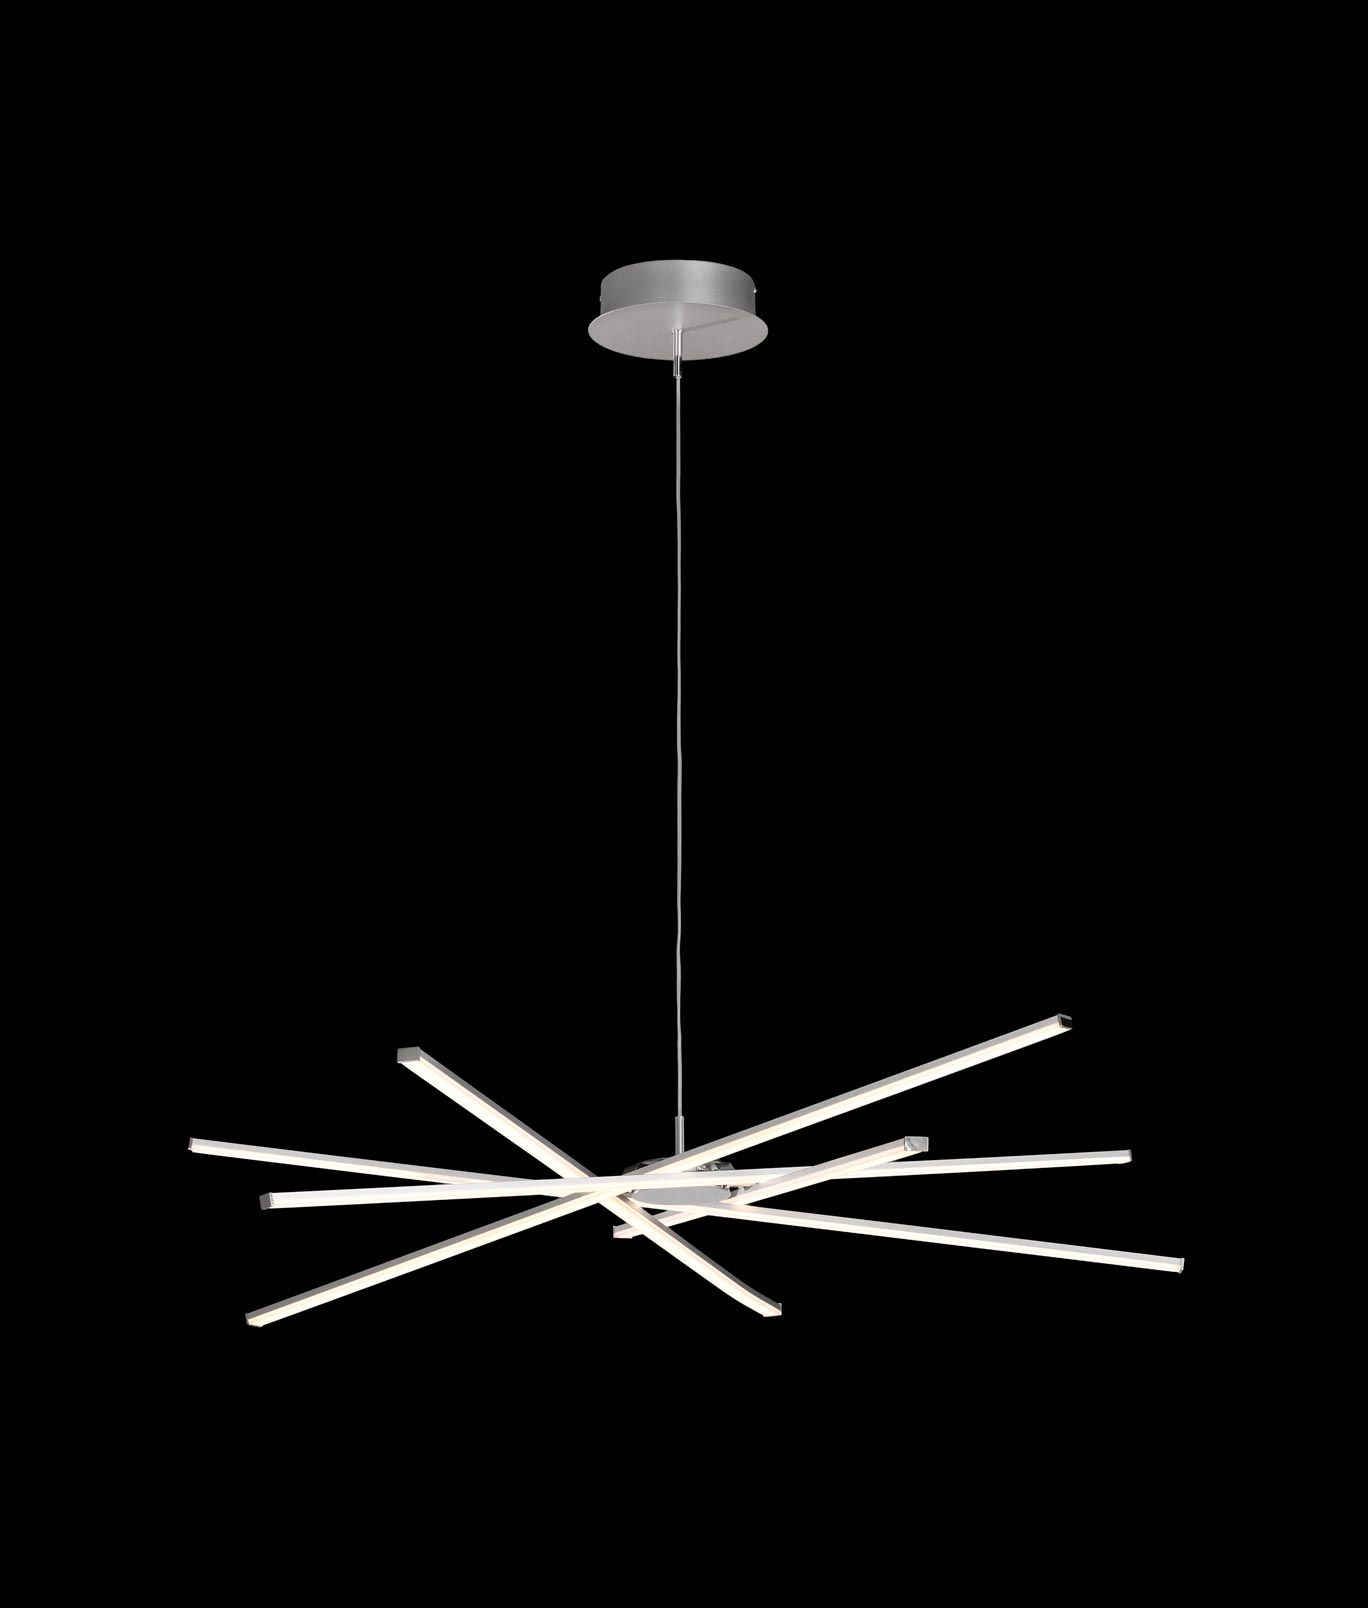 Lamparas Salon Modernas Led Lámpara Colgante Moderna Dimmable Star Led La Casa De La